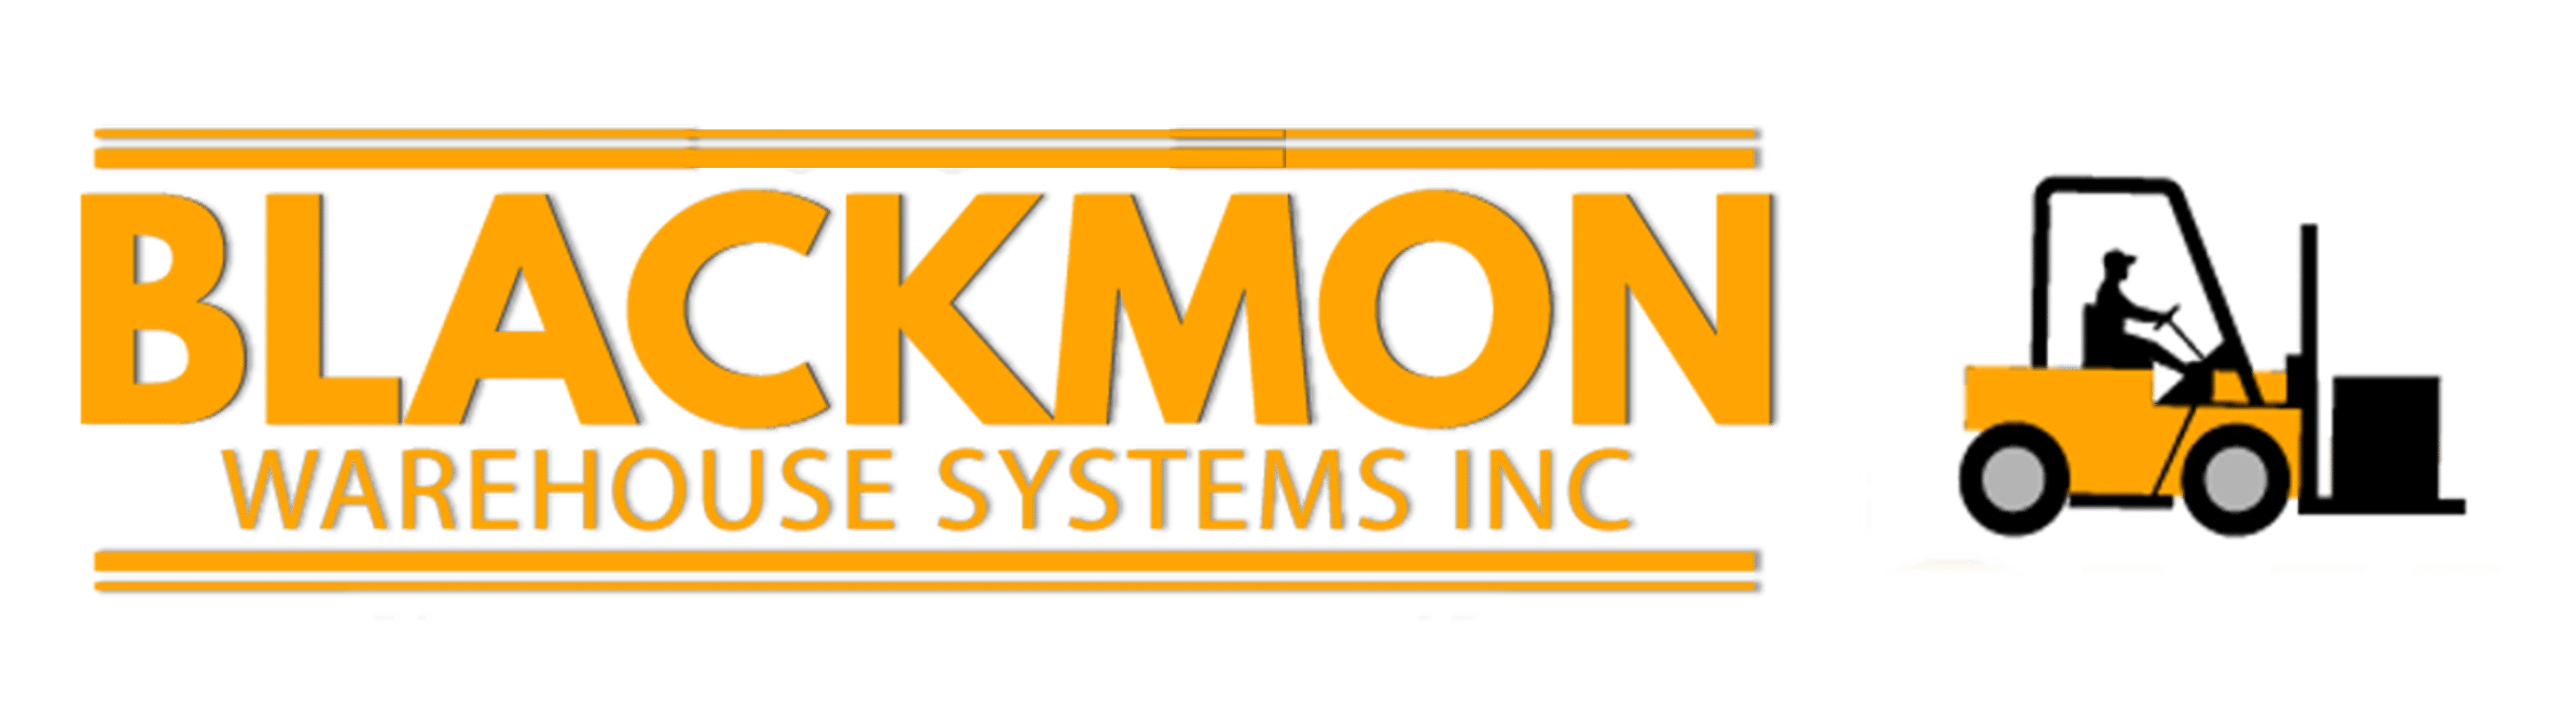 Blackmon Warehouse Systems